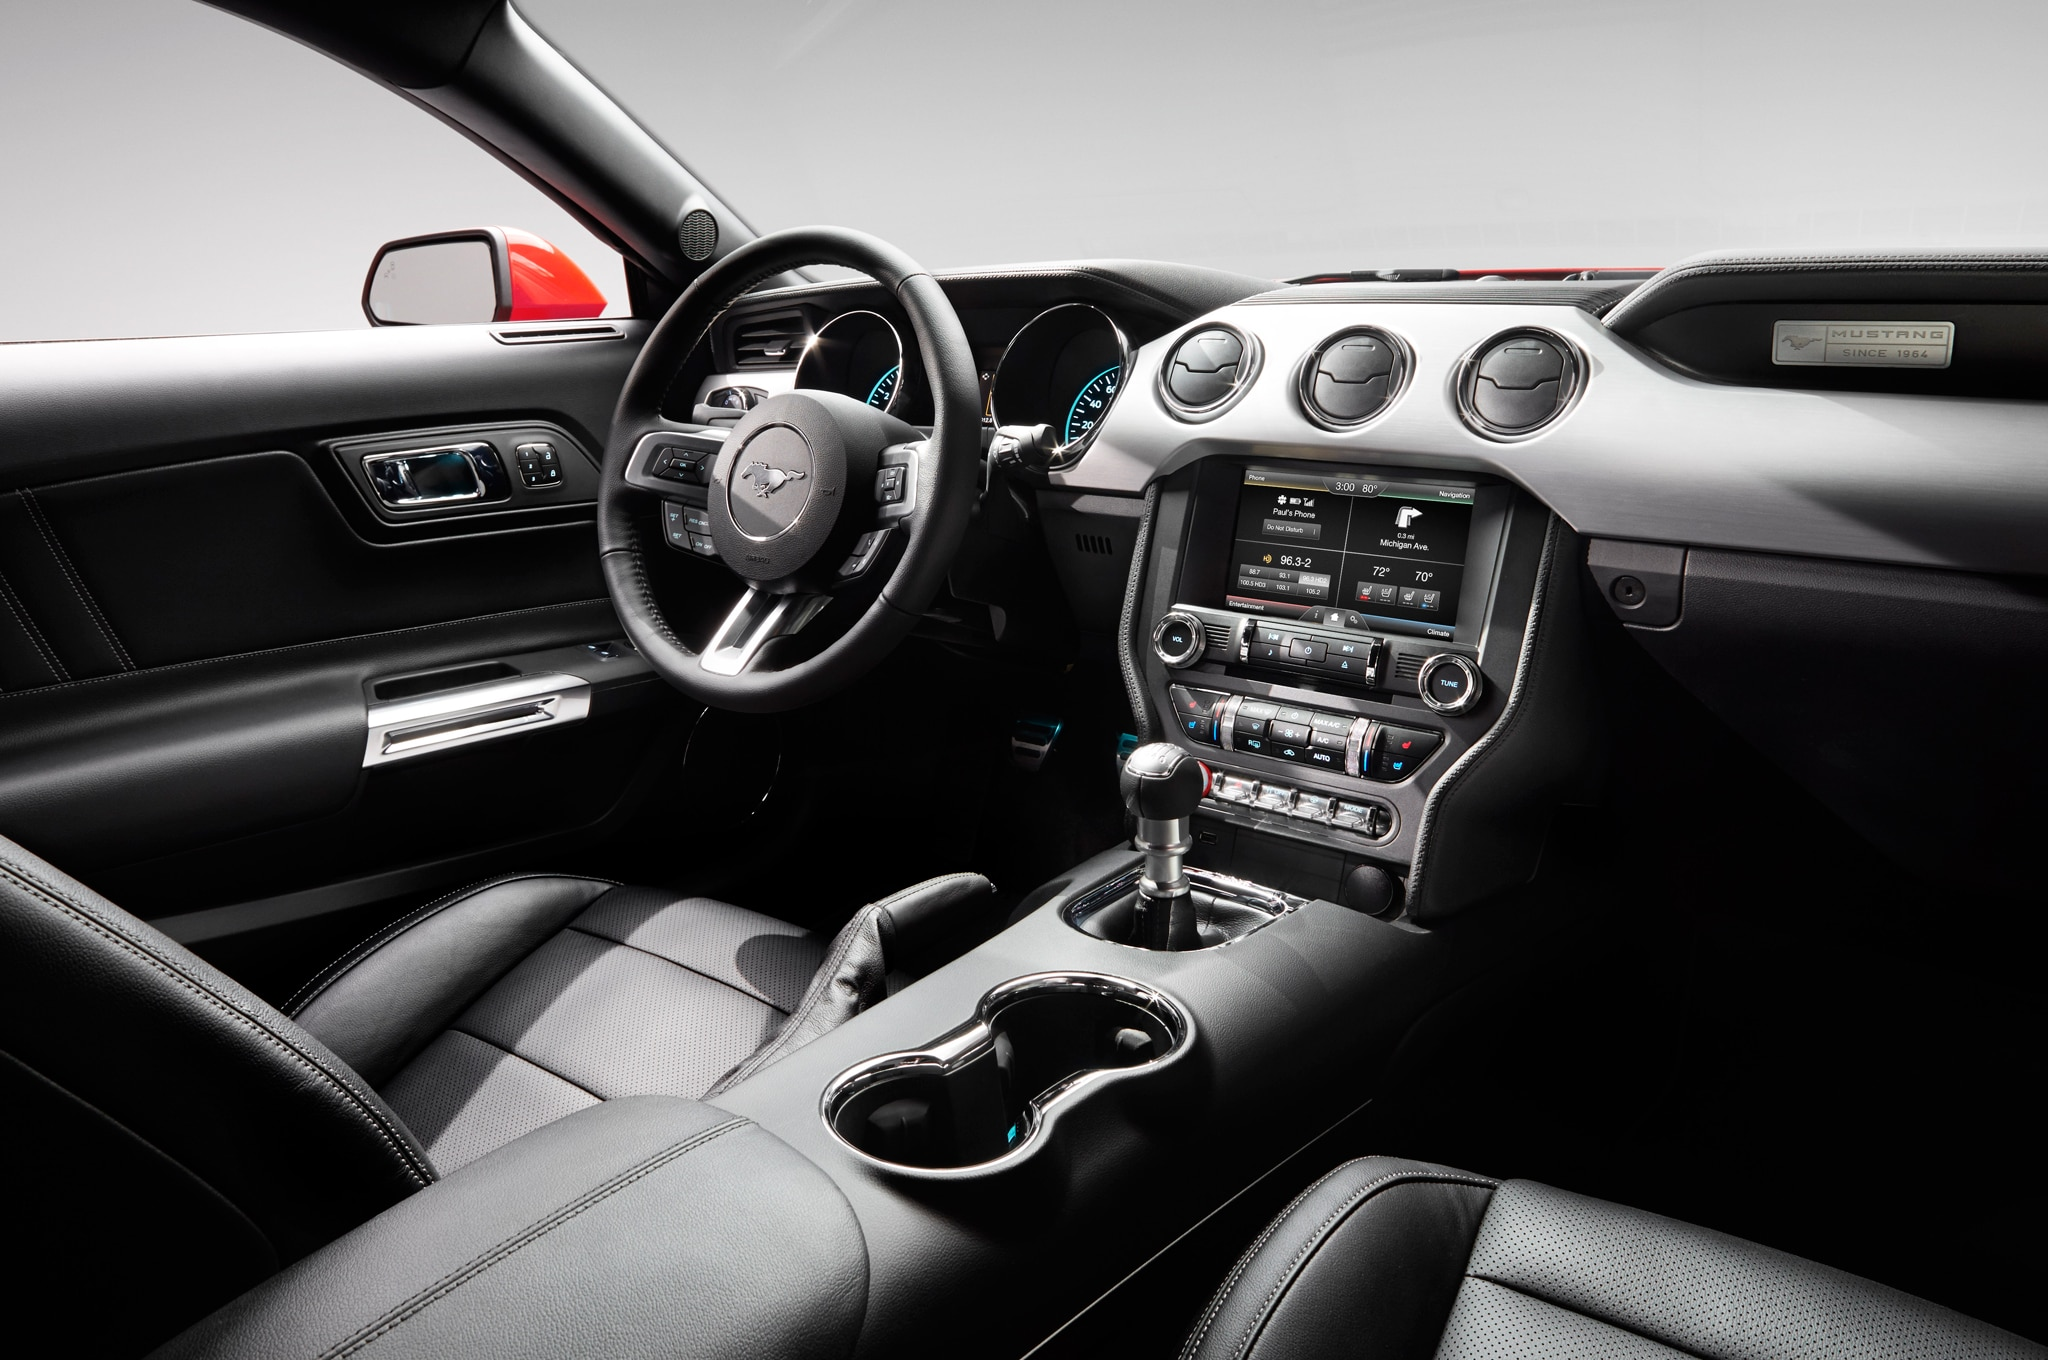 2015 ford mustang interior - 2015 Ford Mustang White Convertible